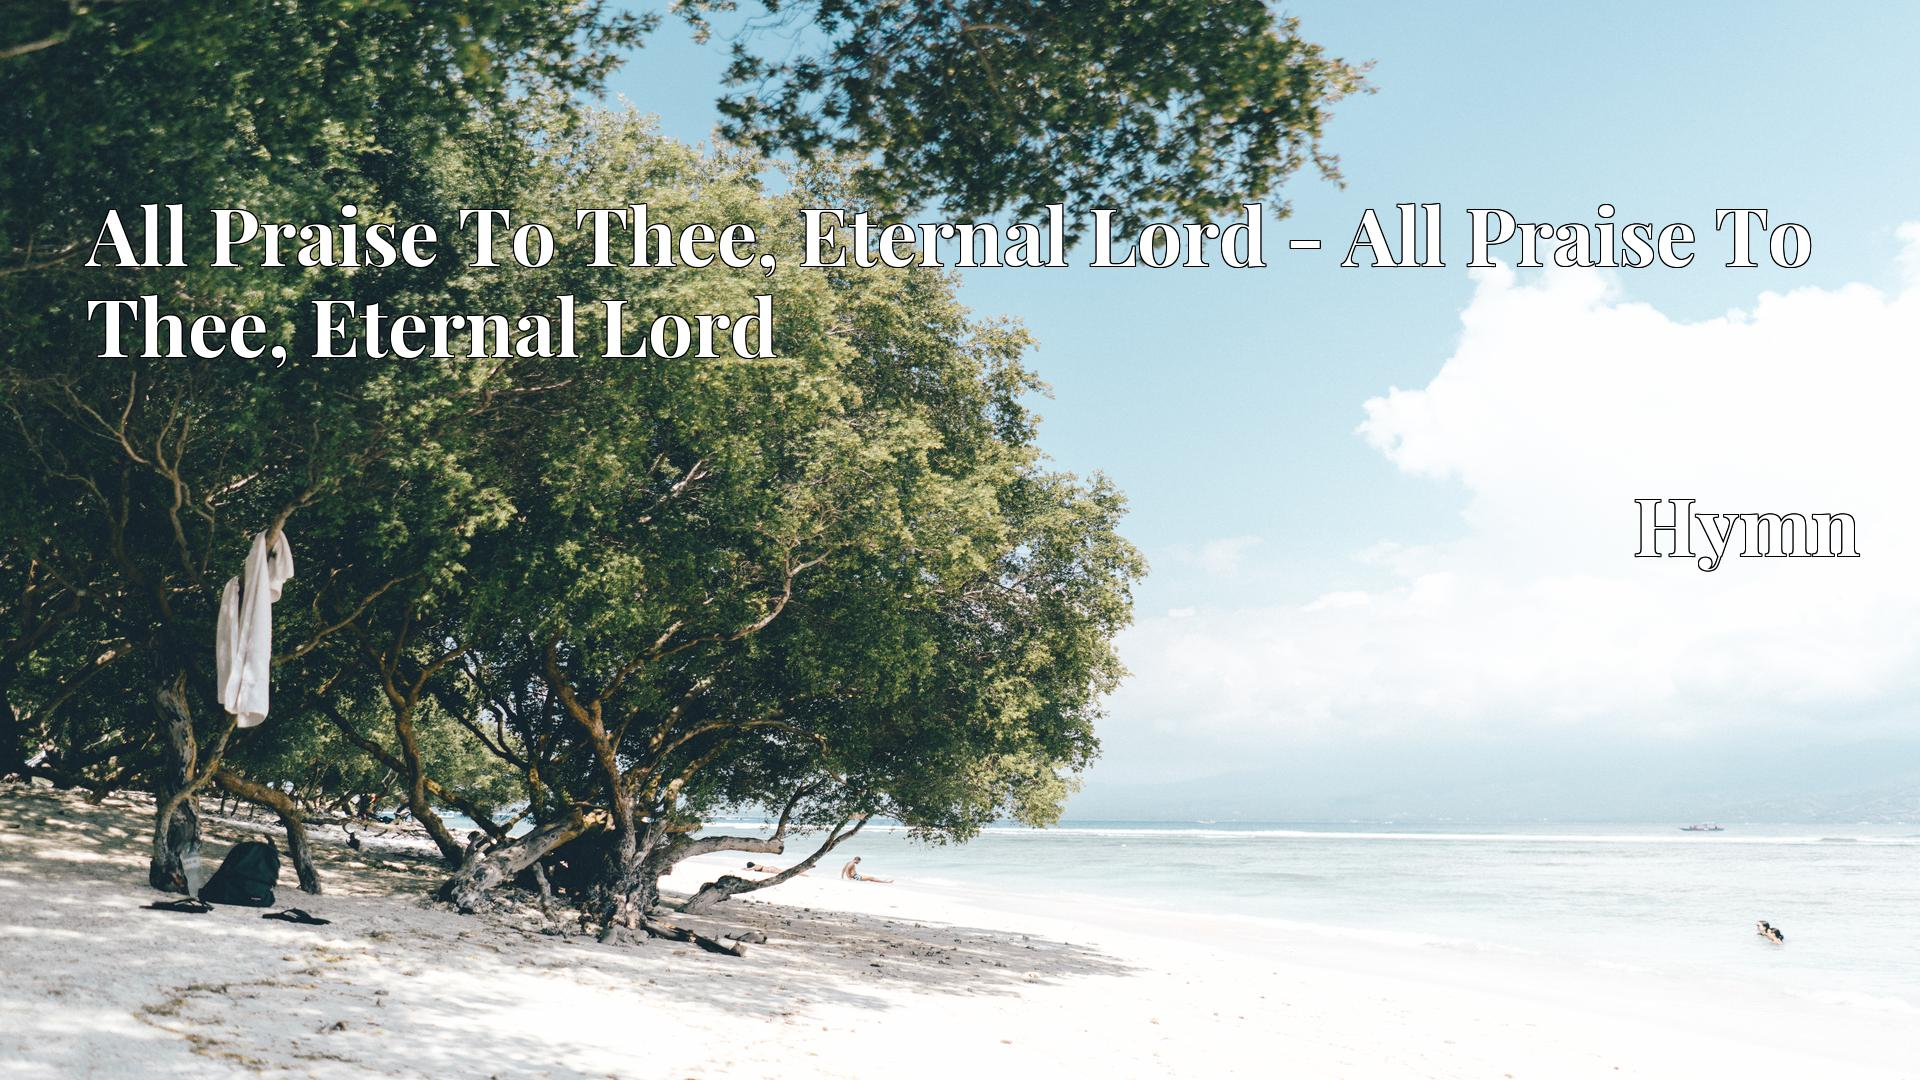 All Praise To Thee, Eternal Lord - All Praise To Thee, Eternal Lord - Hymn